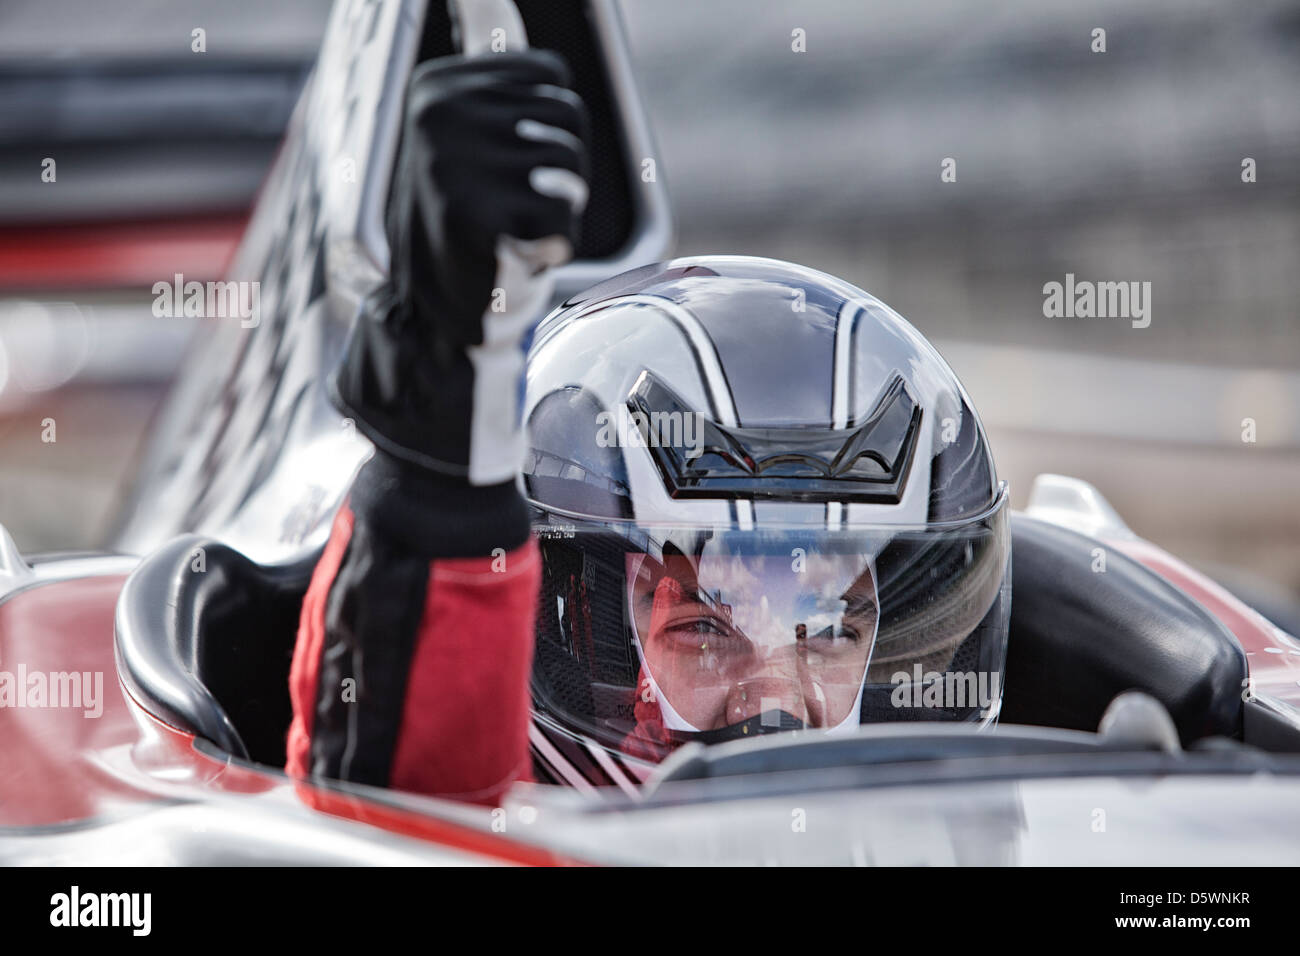 Racer giving thumbs up from car on track - Stock Image